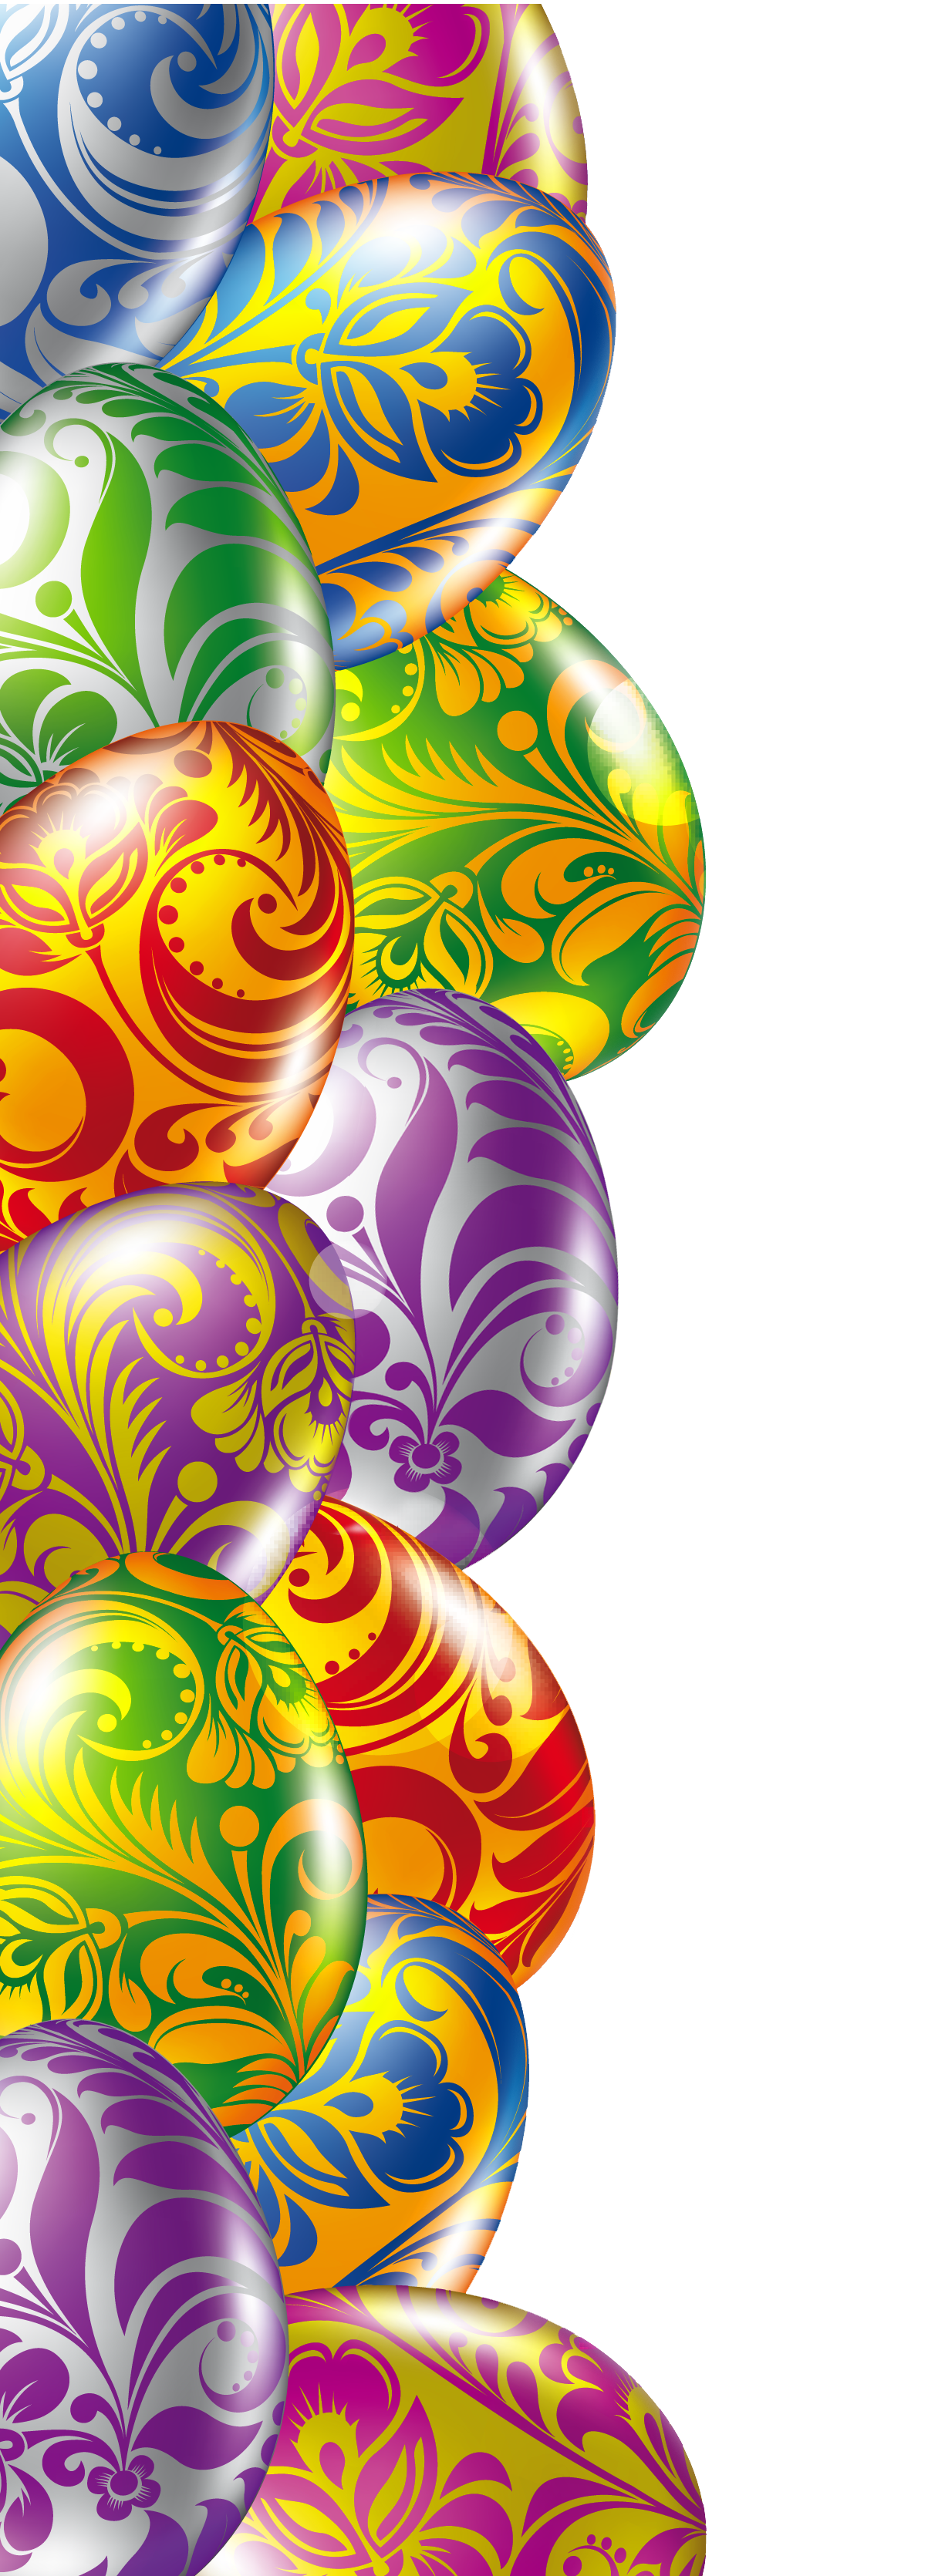 Easter egg clip art border transparent stock Easter Eggs Border Transparent PNG Picture | Crafting - Easter Theme ... transparent stock